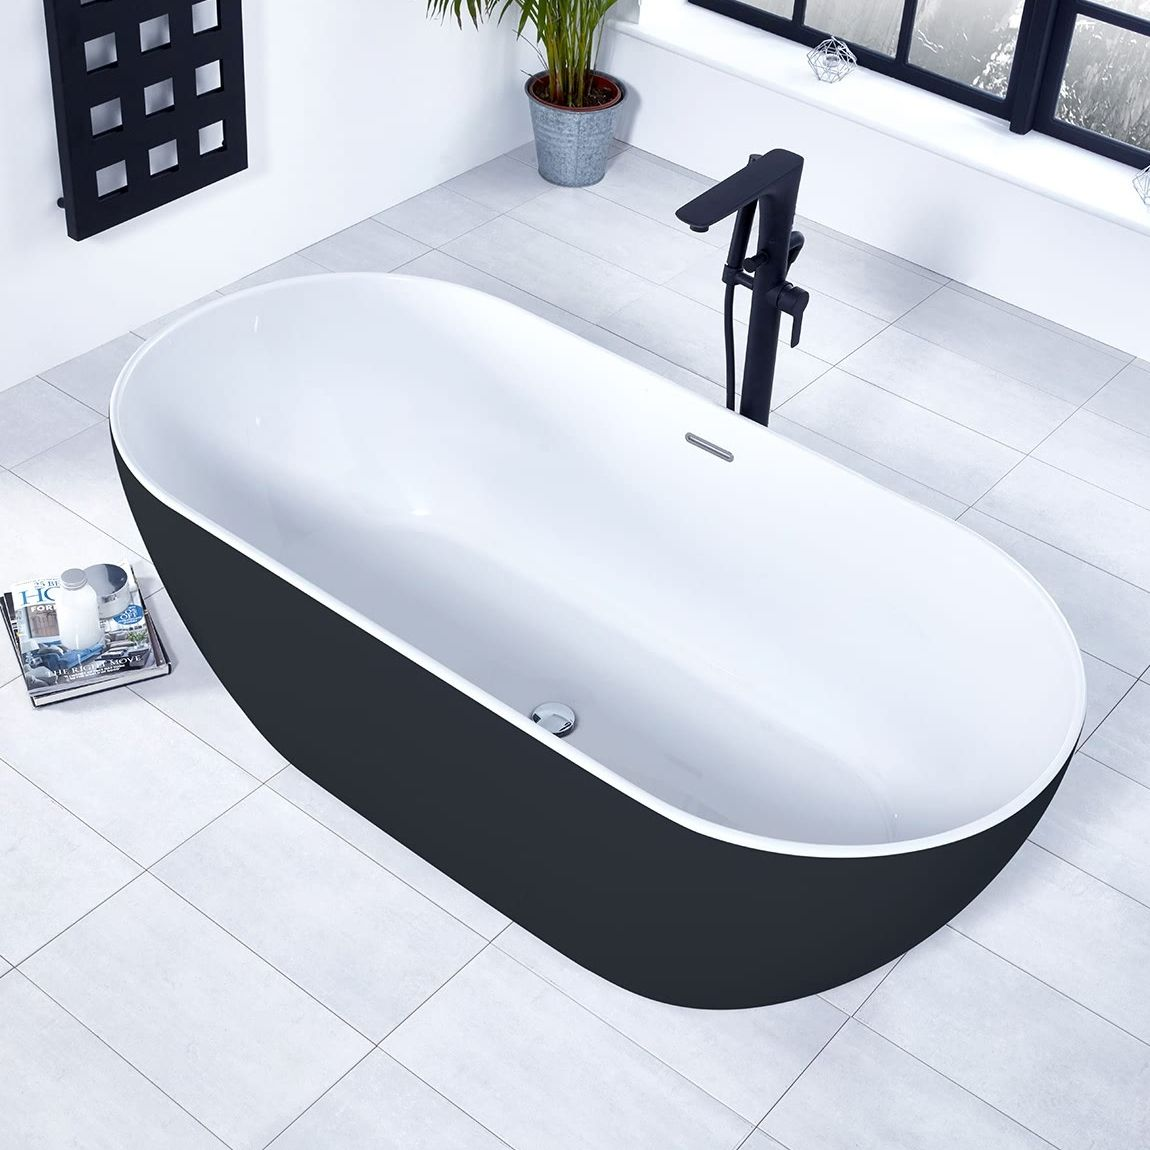 Verona Graphite Summit Freestanding Double Ended Bath 1680mm X